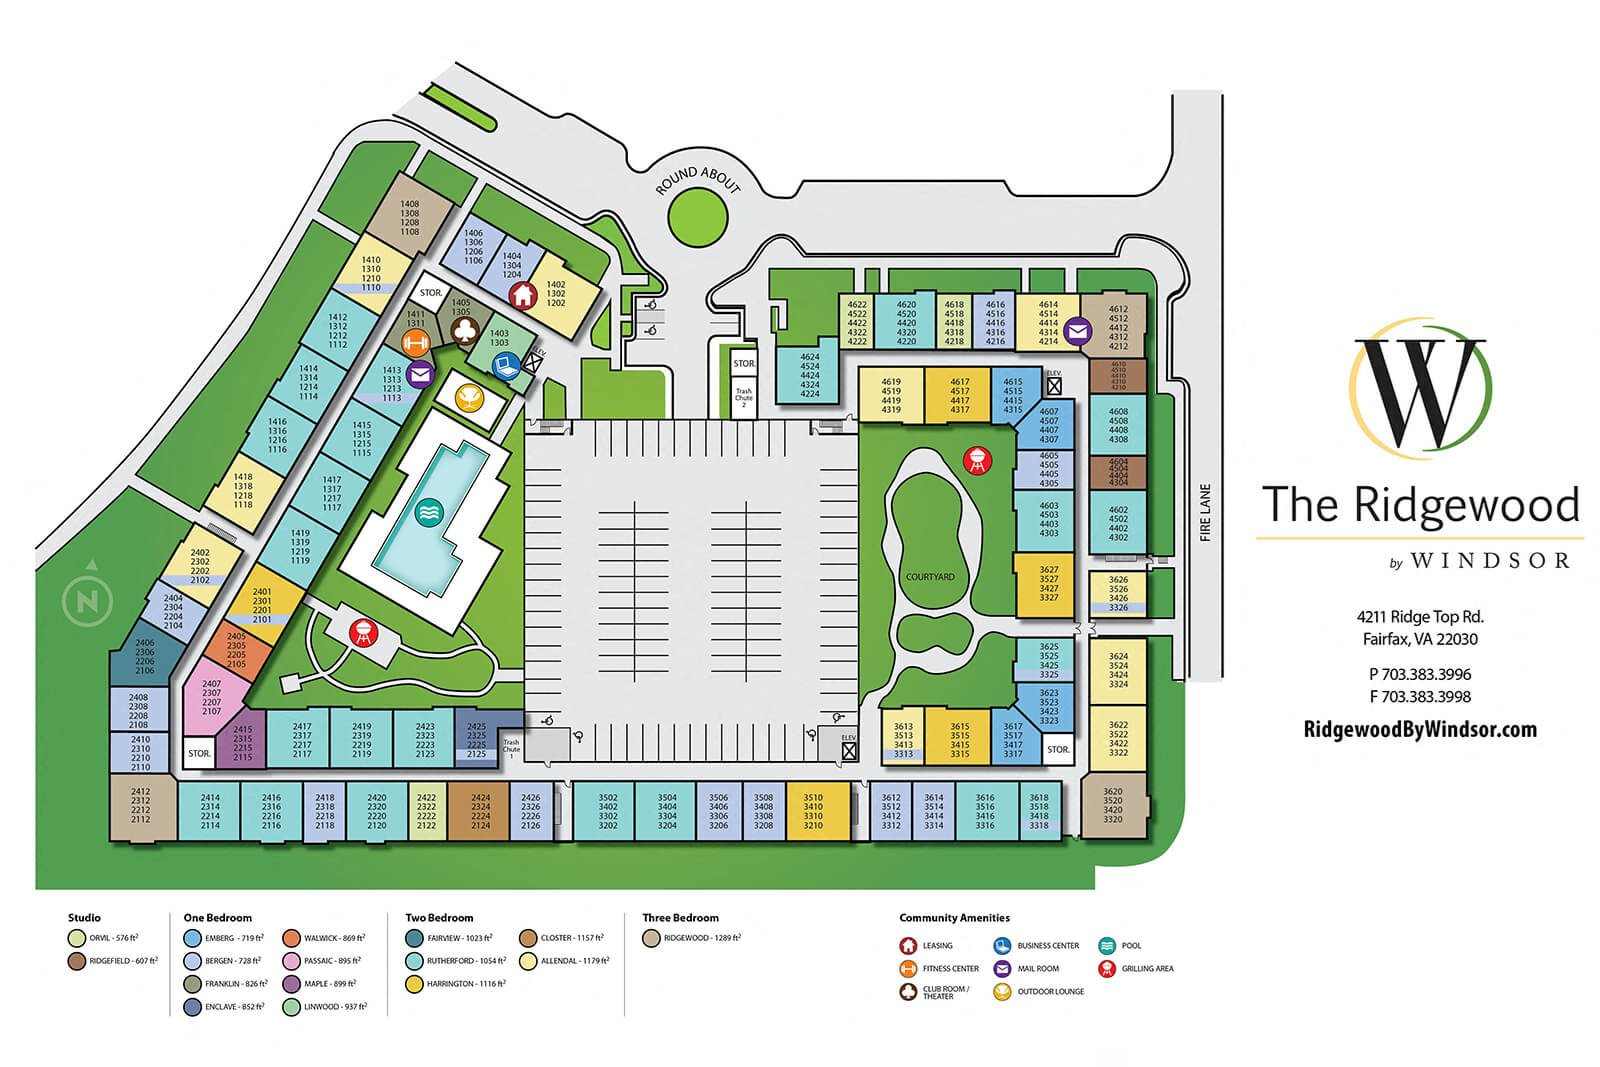 Spacious Grounds on Property Map at The Ridgewood by Windsor, 22030, VA